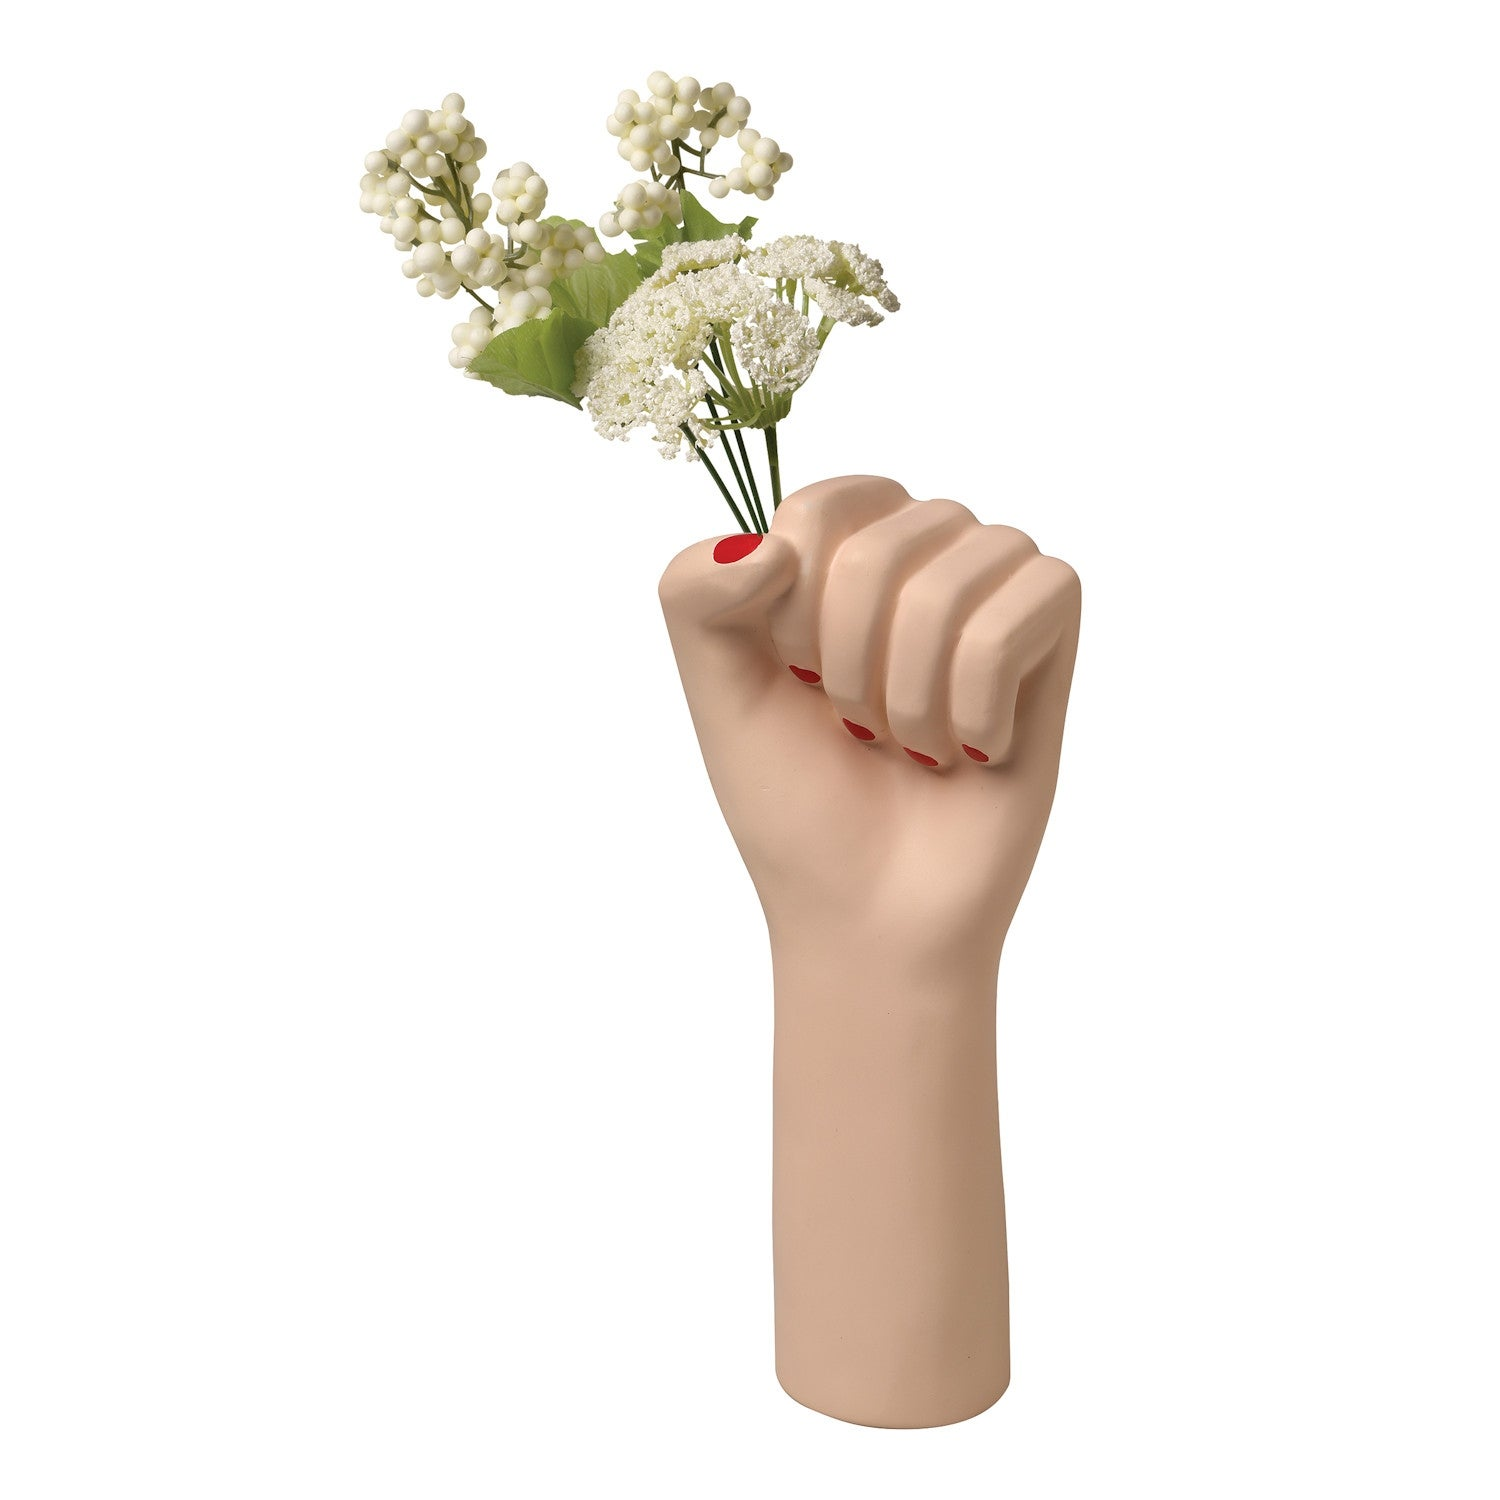 Doiy Girl Power Raised Female Fist Ceramic Vase Decorative Flower Holder Beige Overstock 28860306